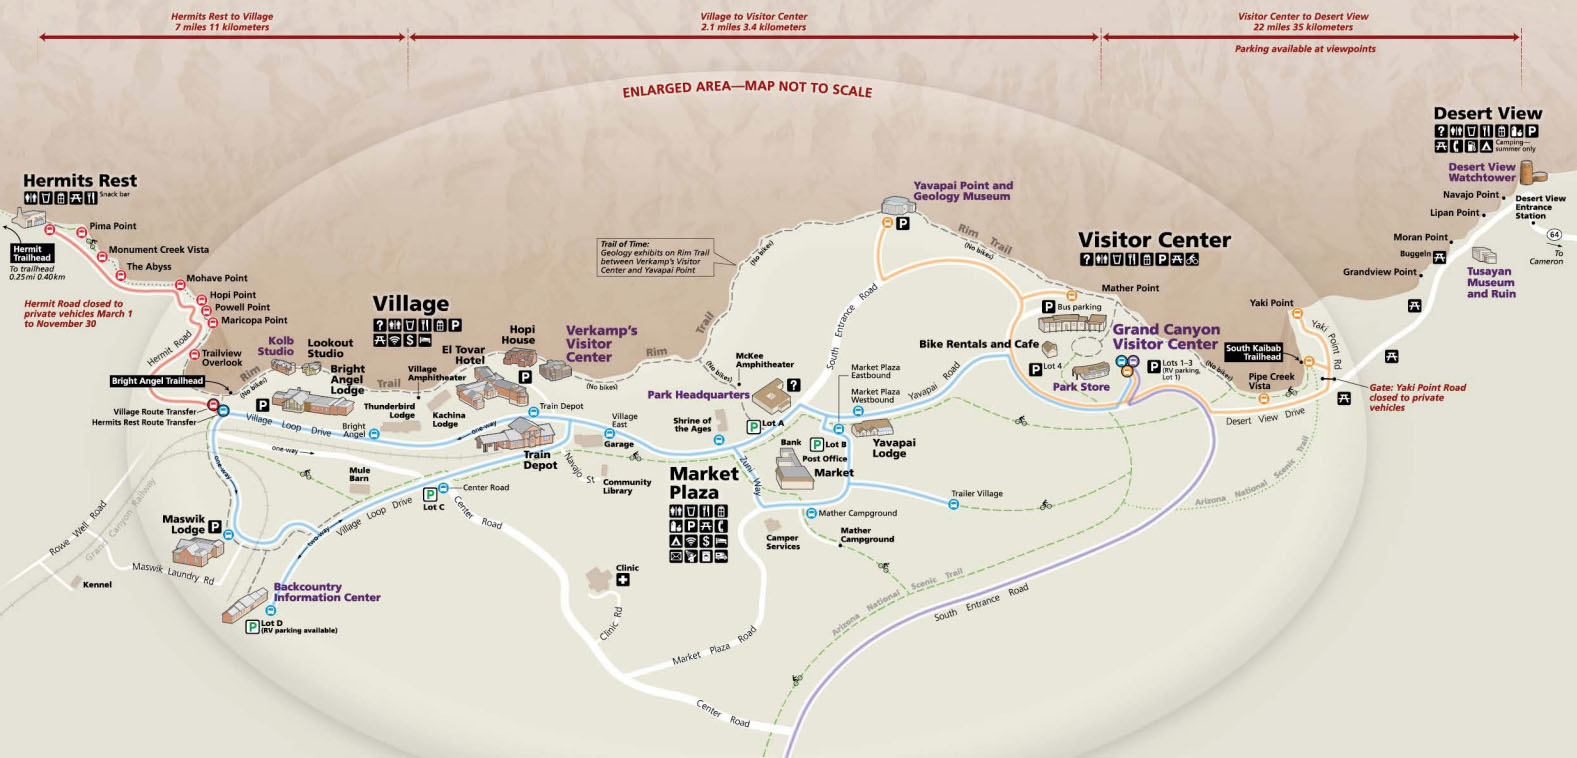 South rim map of the grand canyon. -MamiTalks.com